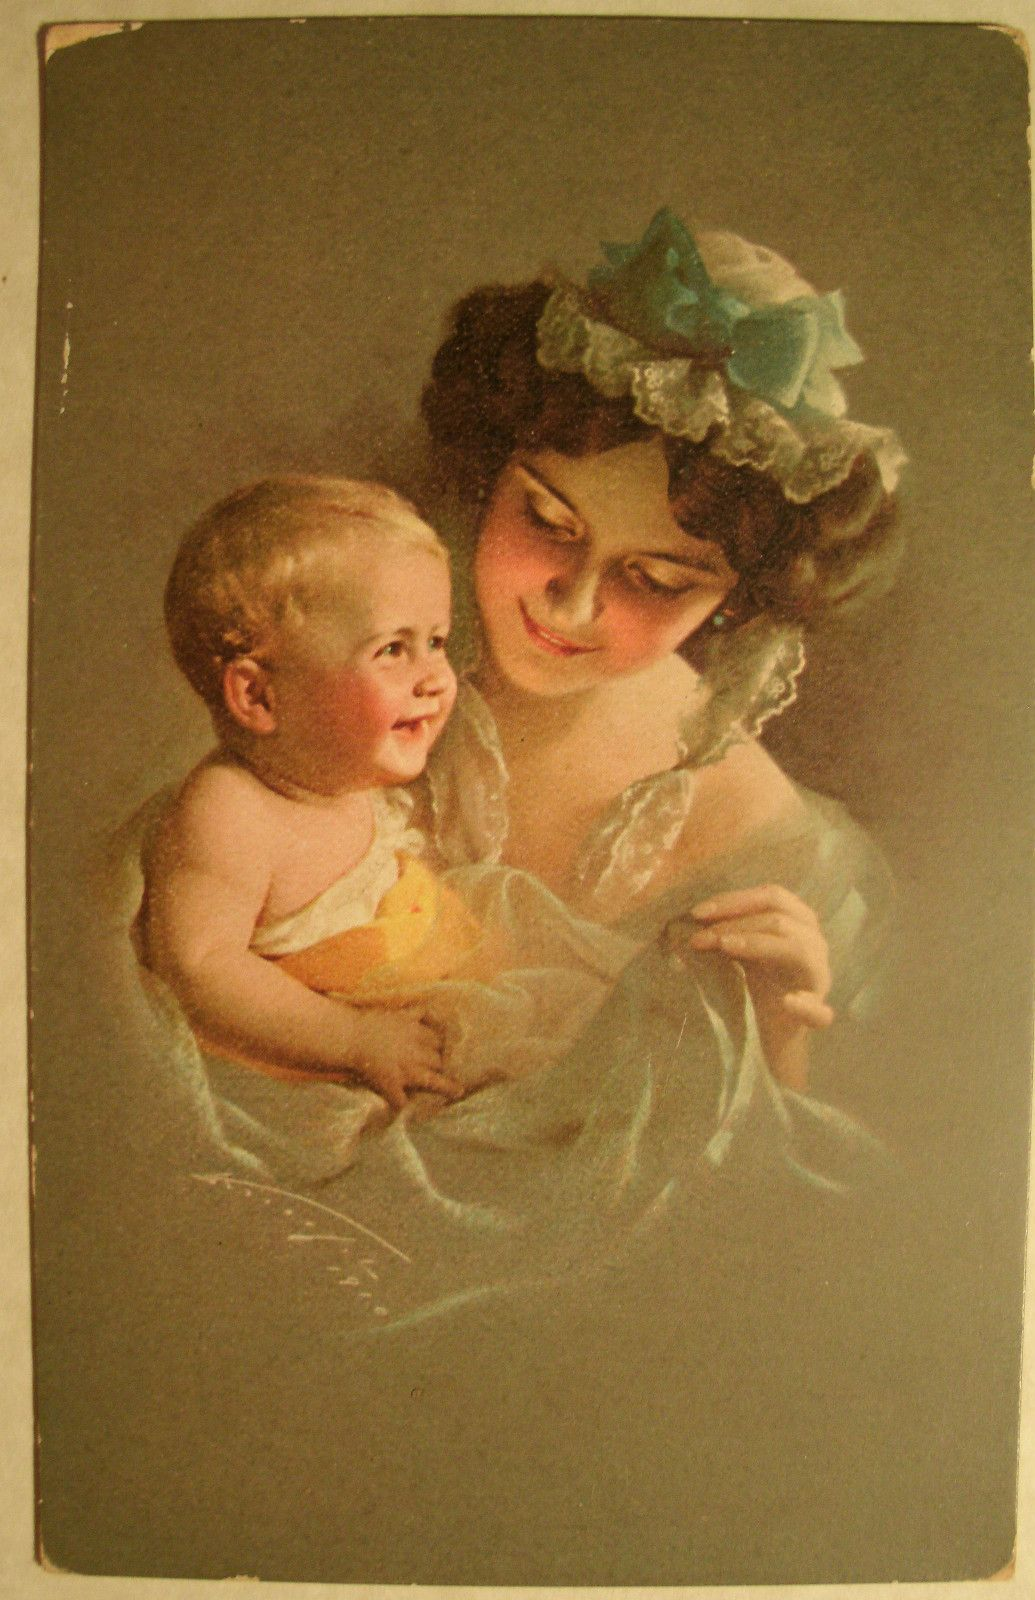 1910 Vintage Mother's Day Postcard. Mother's Day May 12, 2013 (With images) | Vintage illustration